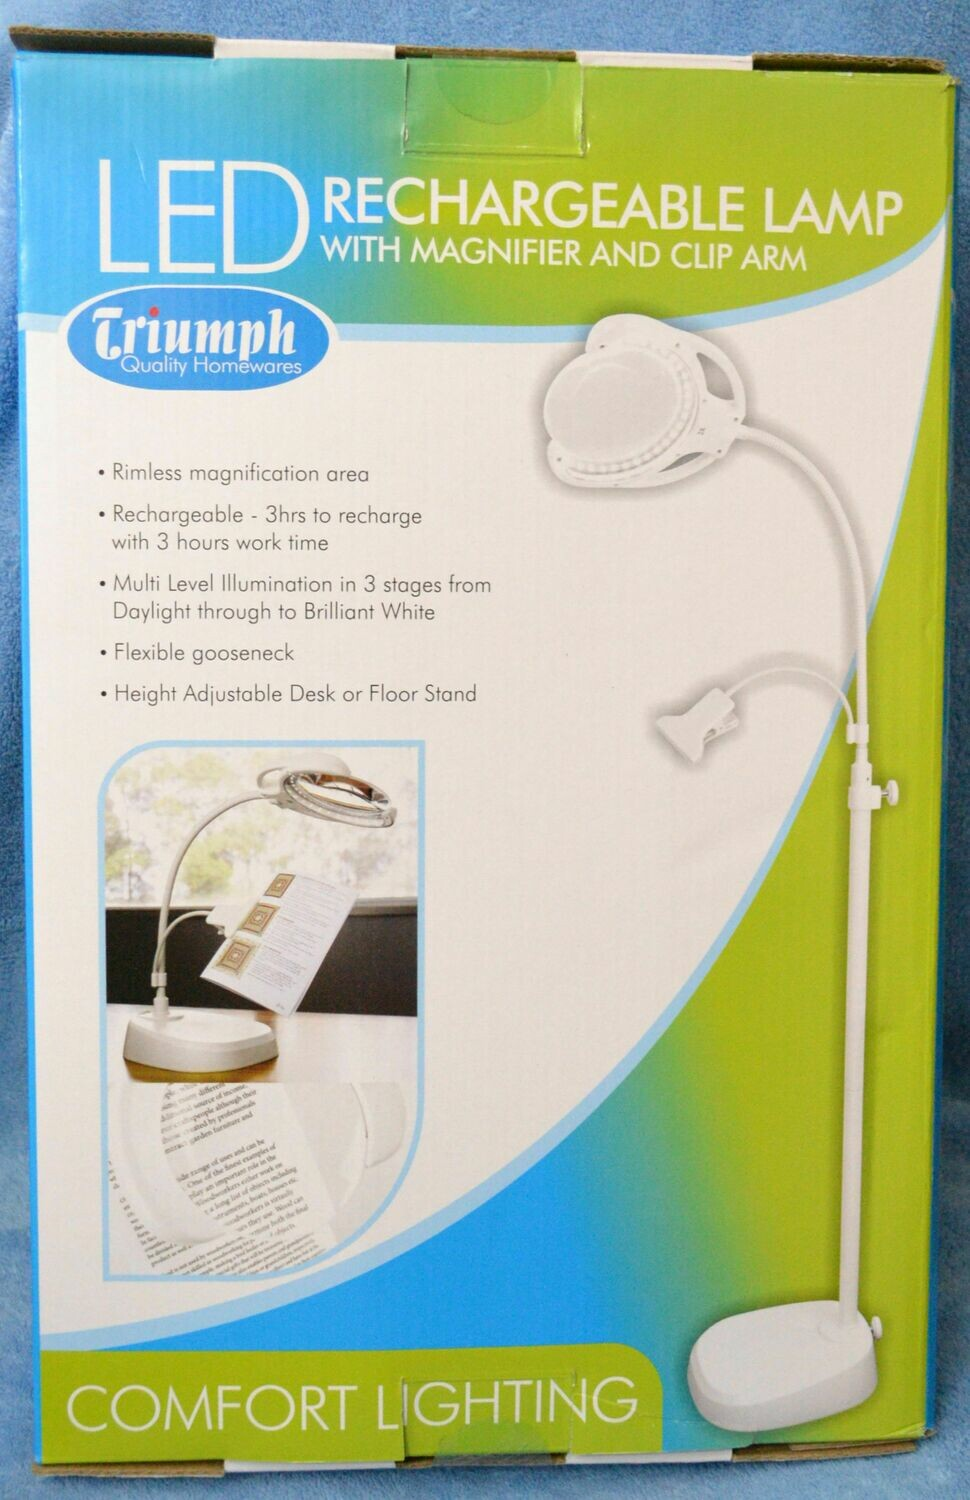 Triumph LED Rechargable Lamp w. Magnifier & Clamp (OD189)